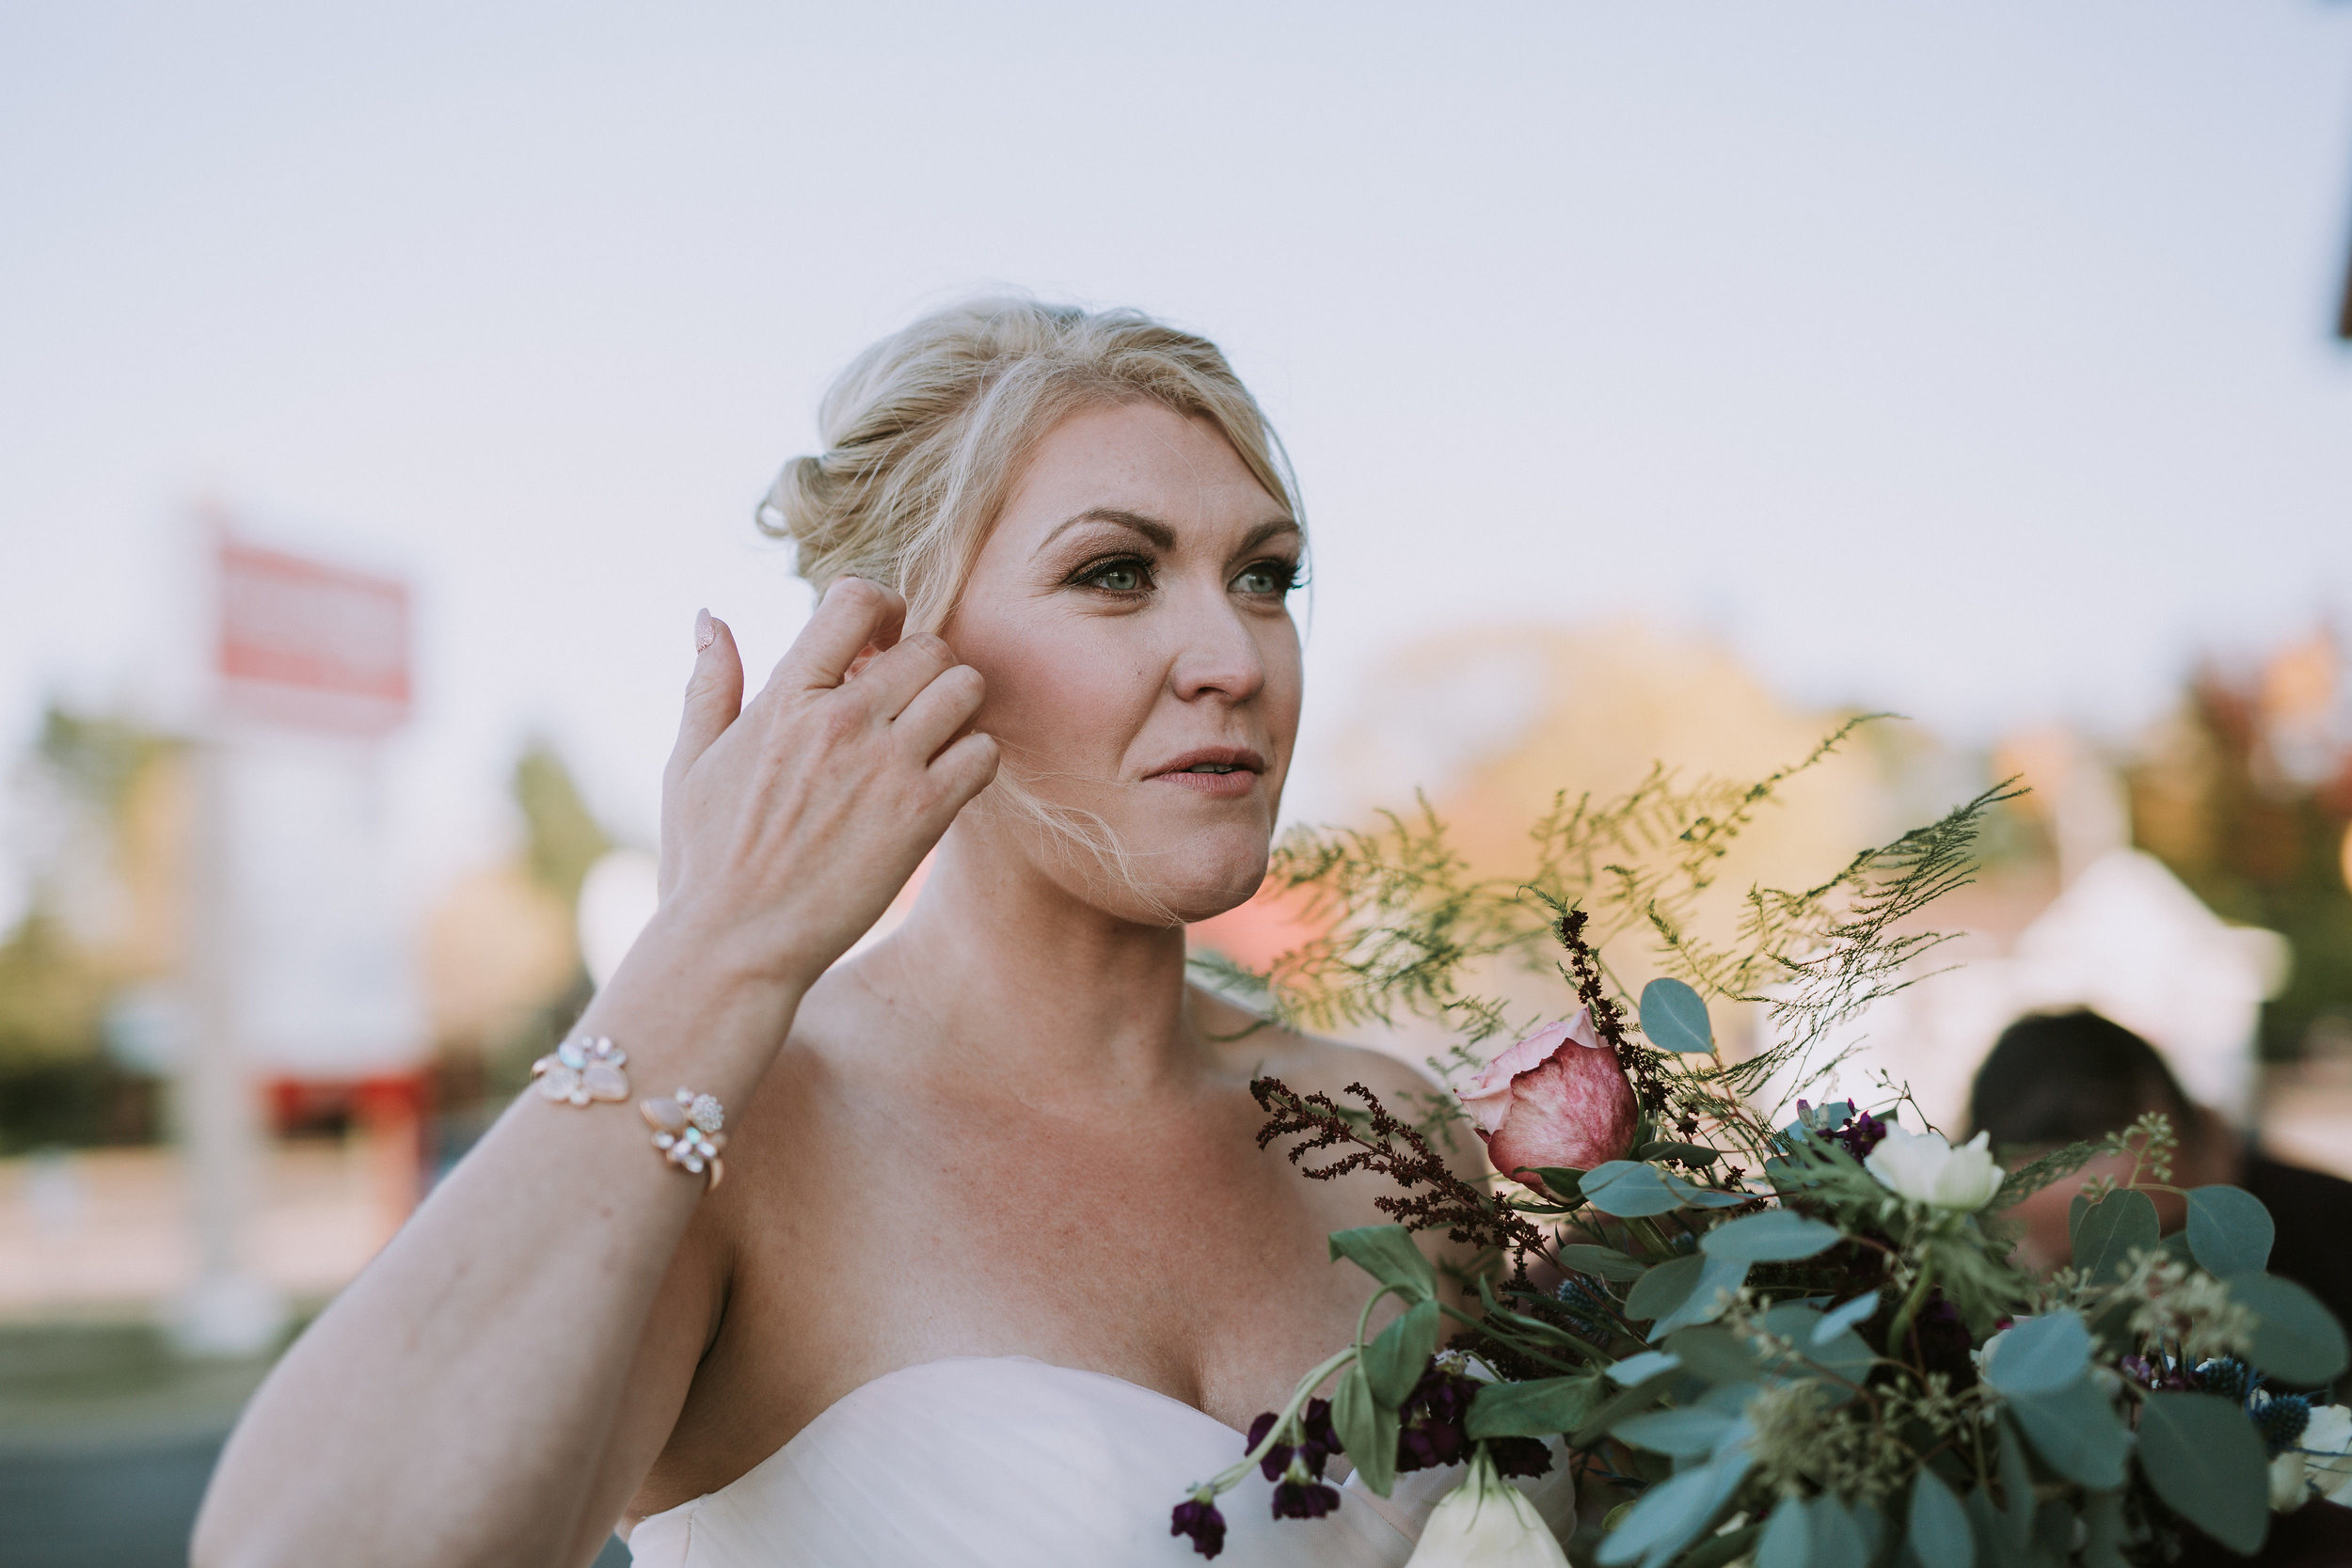 20171007_ShannonMayPhotography_MARRIED_362.jpg